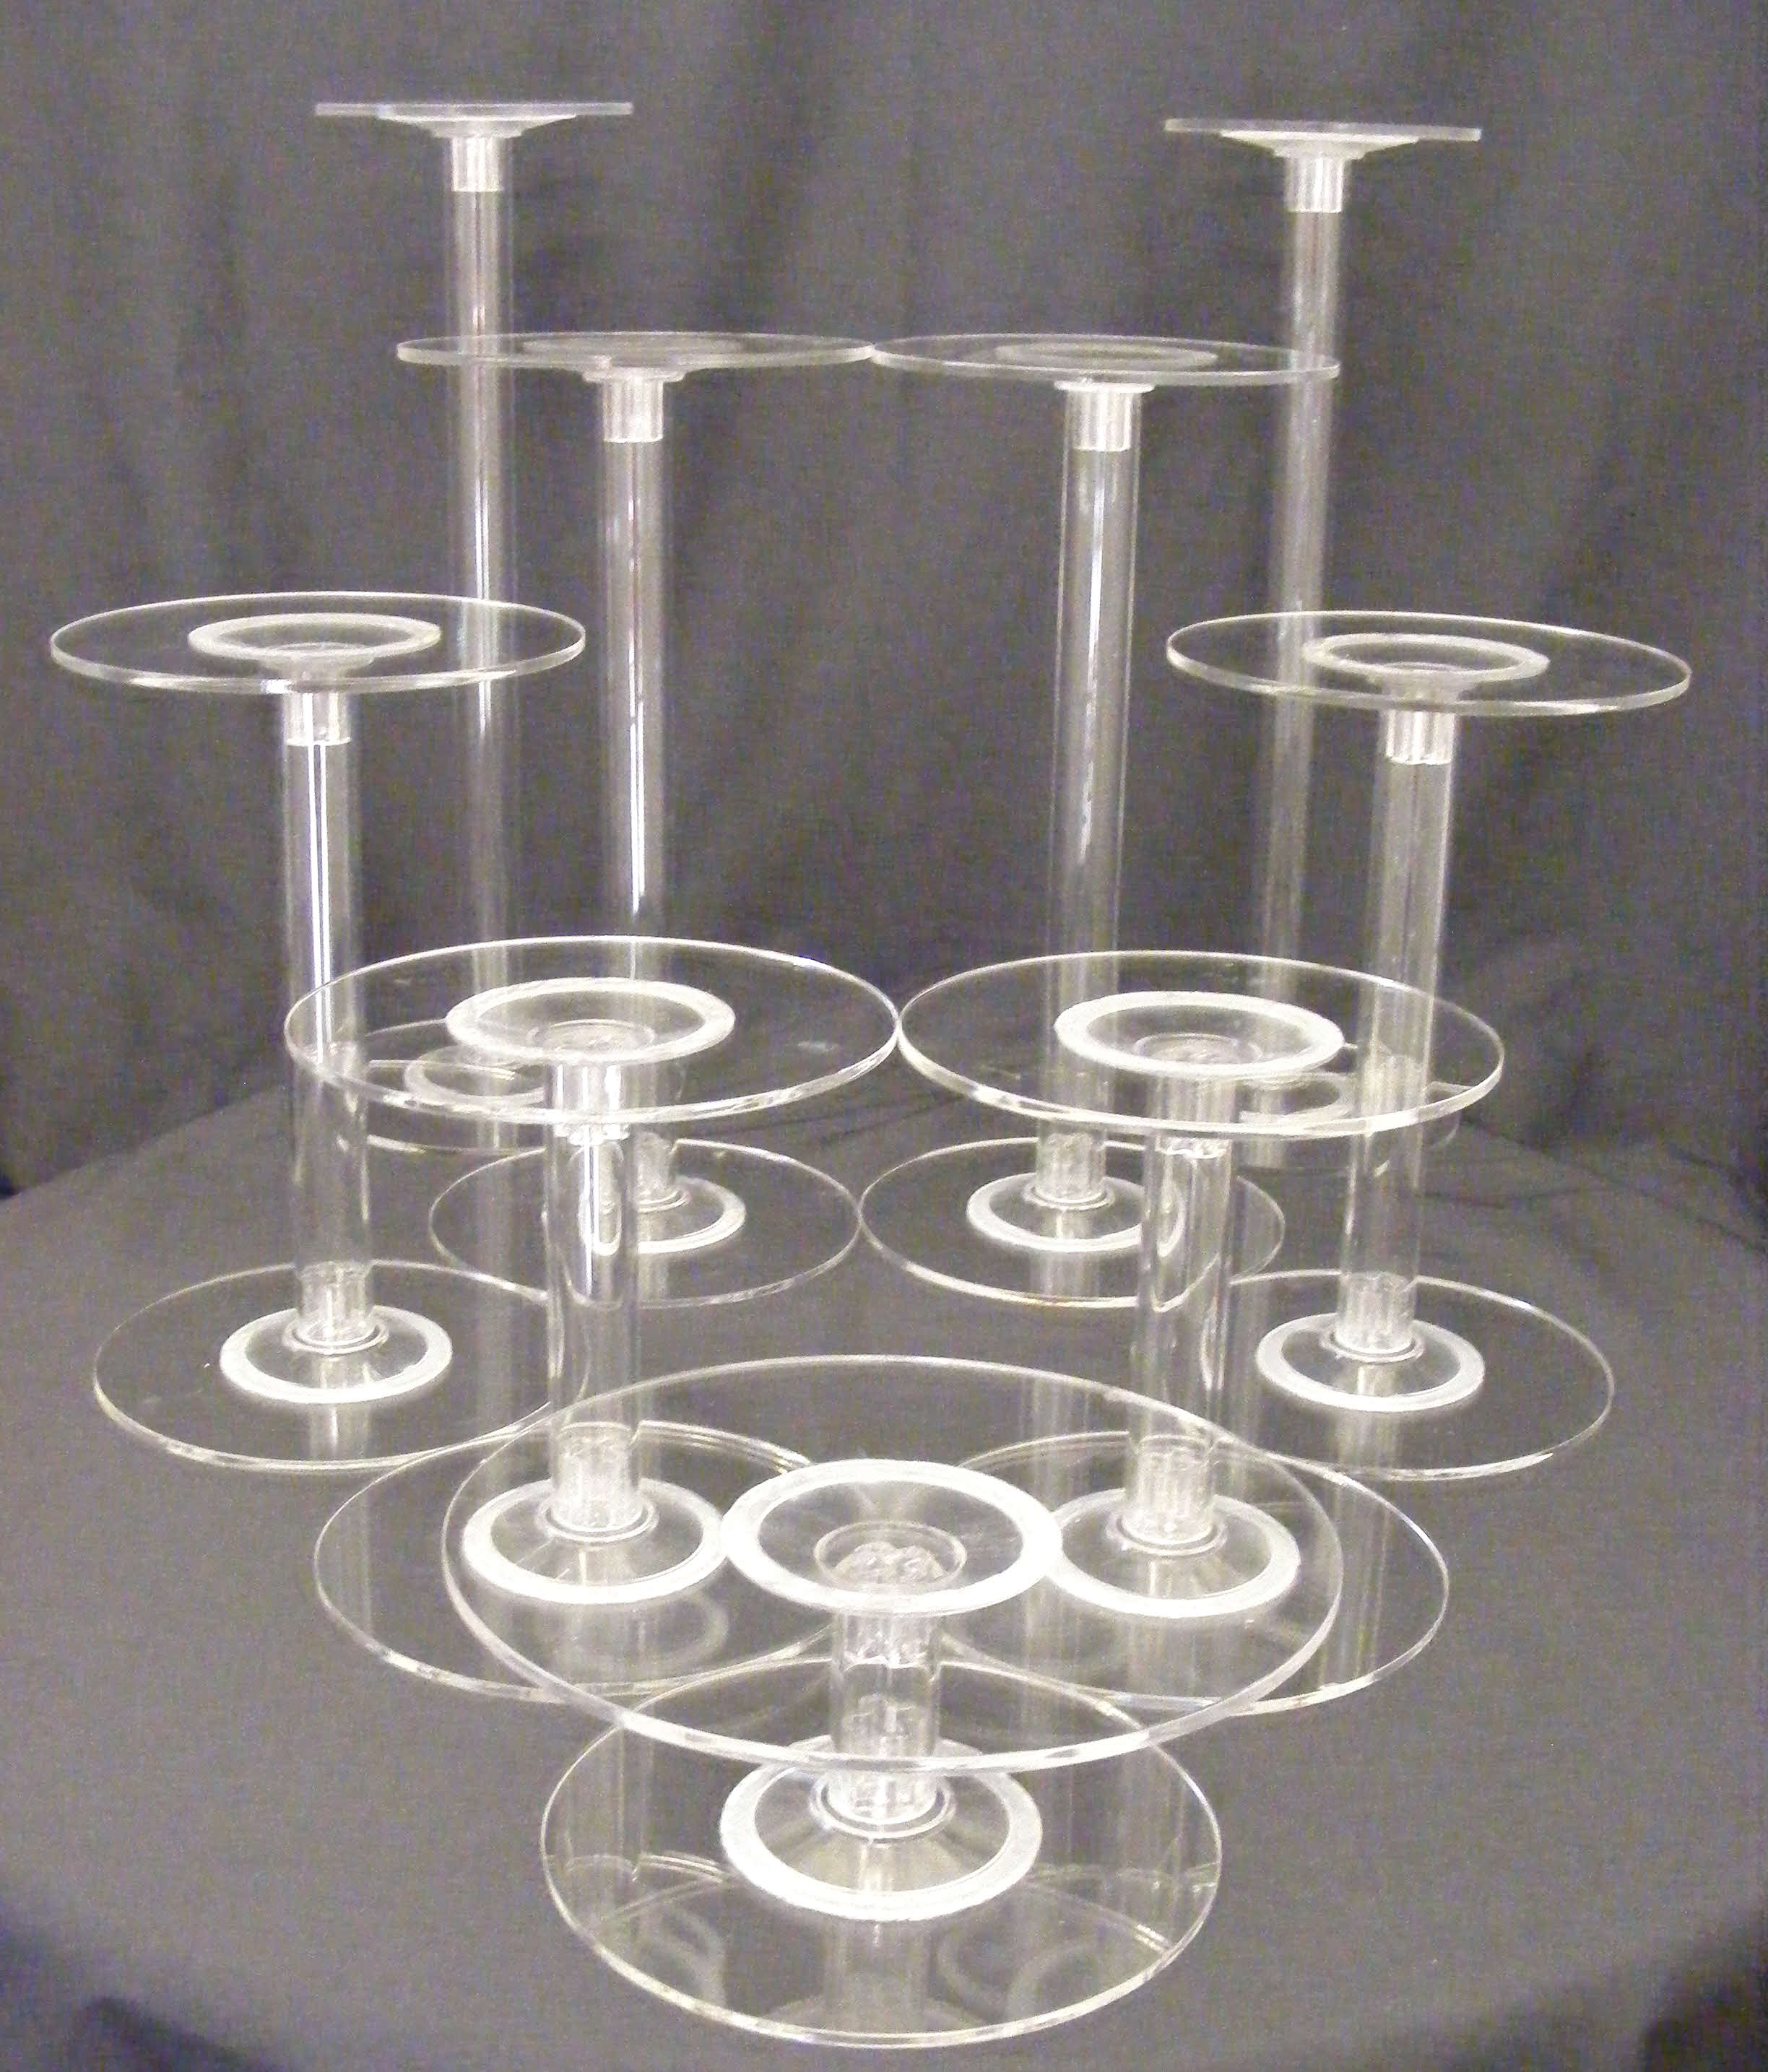 1 10 Tier Cake Stand Flexible Arrangement Hire Barker